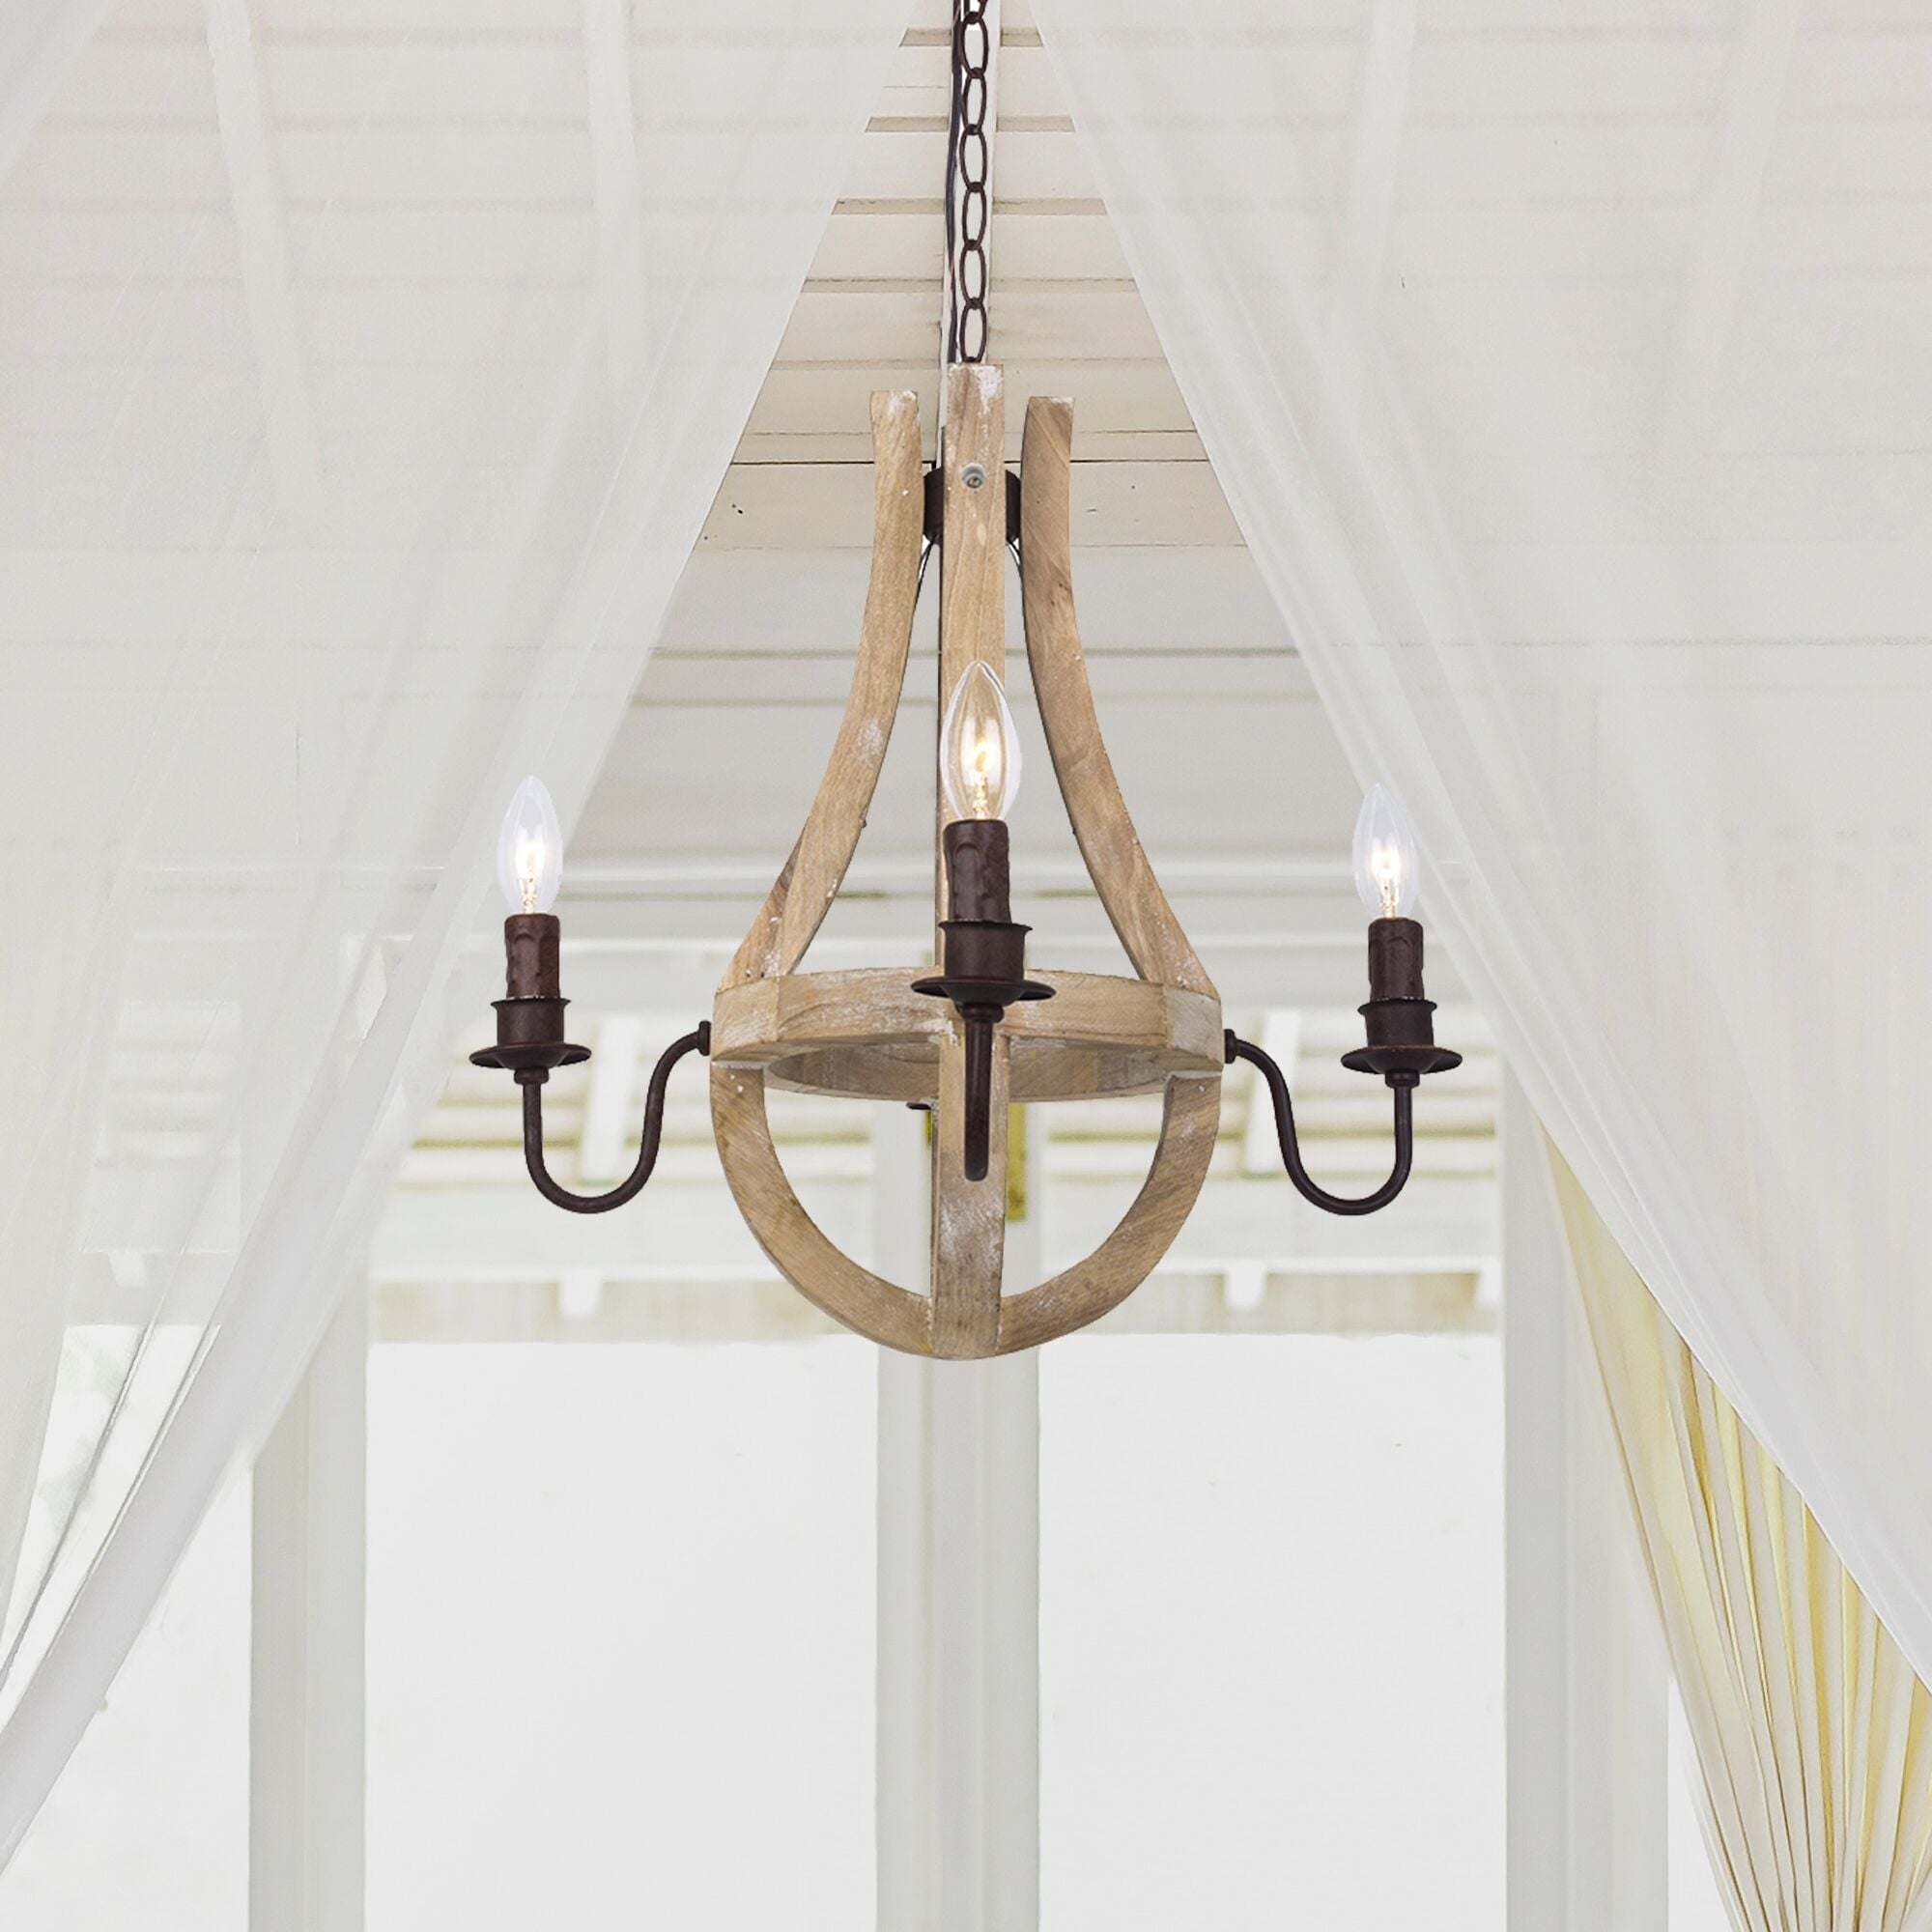 Shop farmhouse 4 light floyer distressed wood chandelier h19 5xw19 on sale free shipping today overstock com 19554806